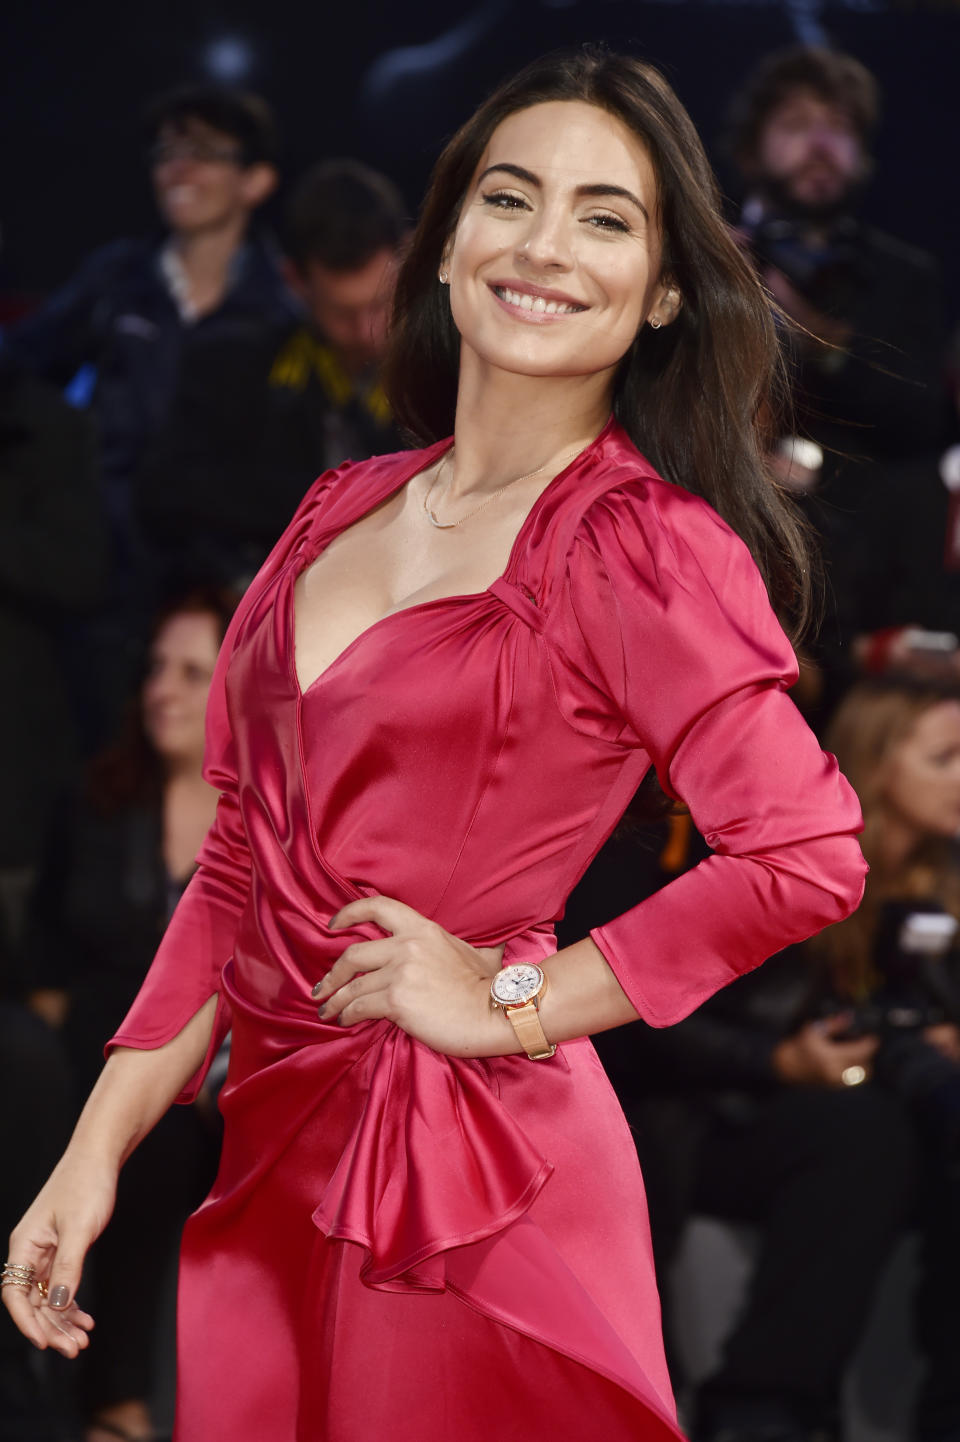 VENICE, ITALY - SEPTEMBER 04:  Ana Brenda Contreras walks the red carpet wearing a Jaeger-LeCoultre watch ahead of the 'Three Billboards Outside Ebbing, Missouri' screening during the 74th Venice Film Festival at Sala Grande on September 4, 2017 in Venice, Italy.  (Photo by Pascal Le Segretain/Getty Images for Jaeger-LeCoultre)